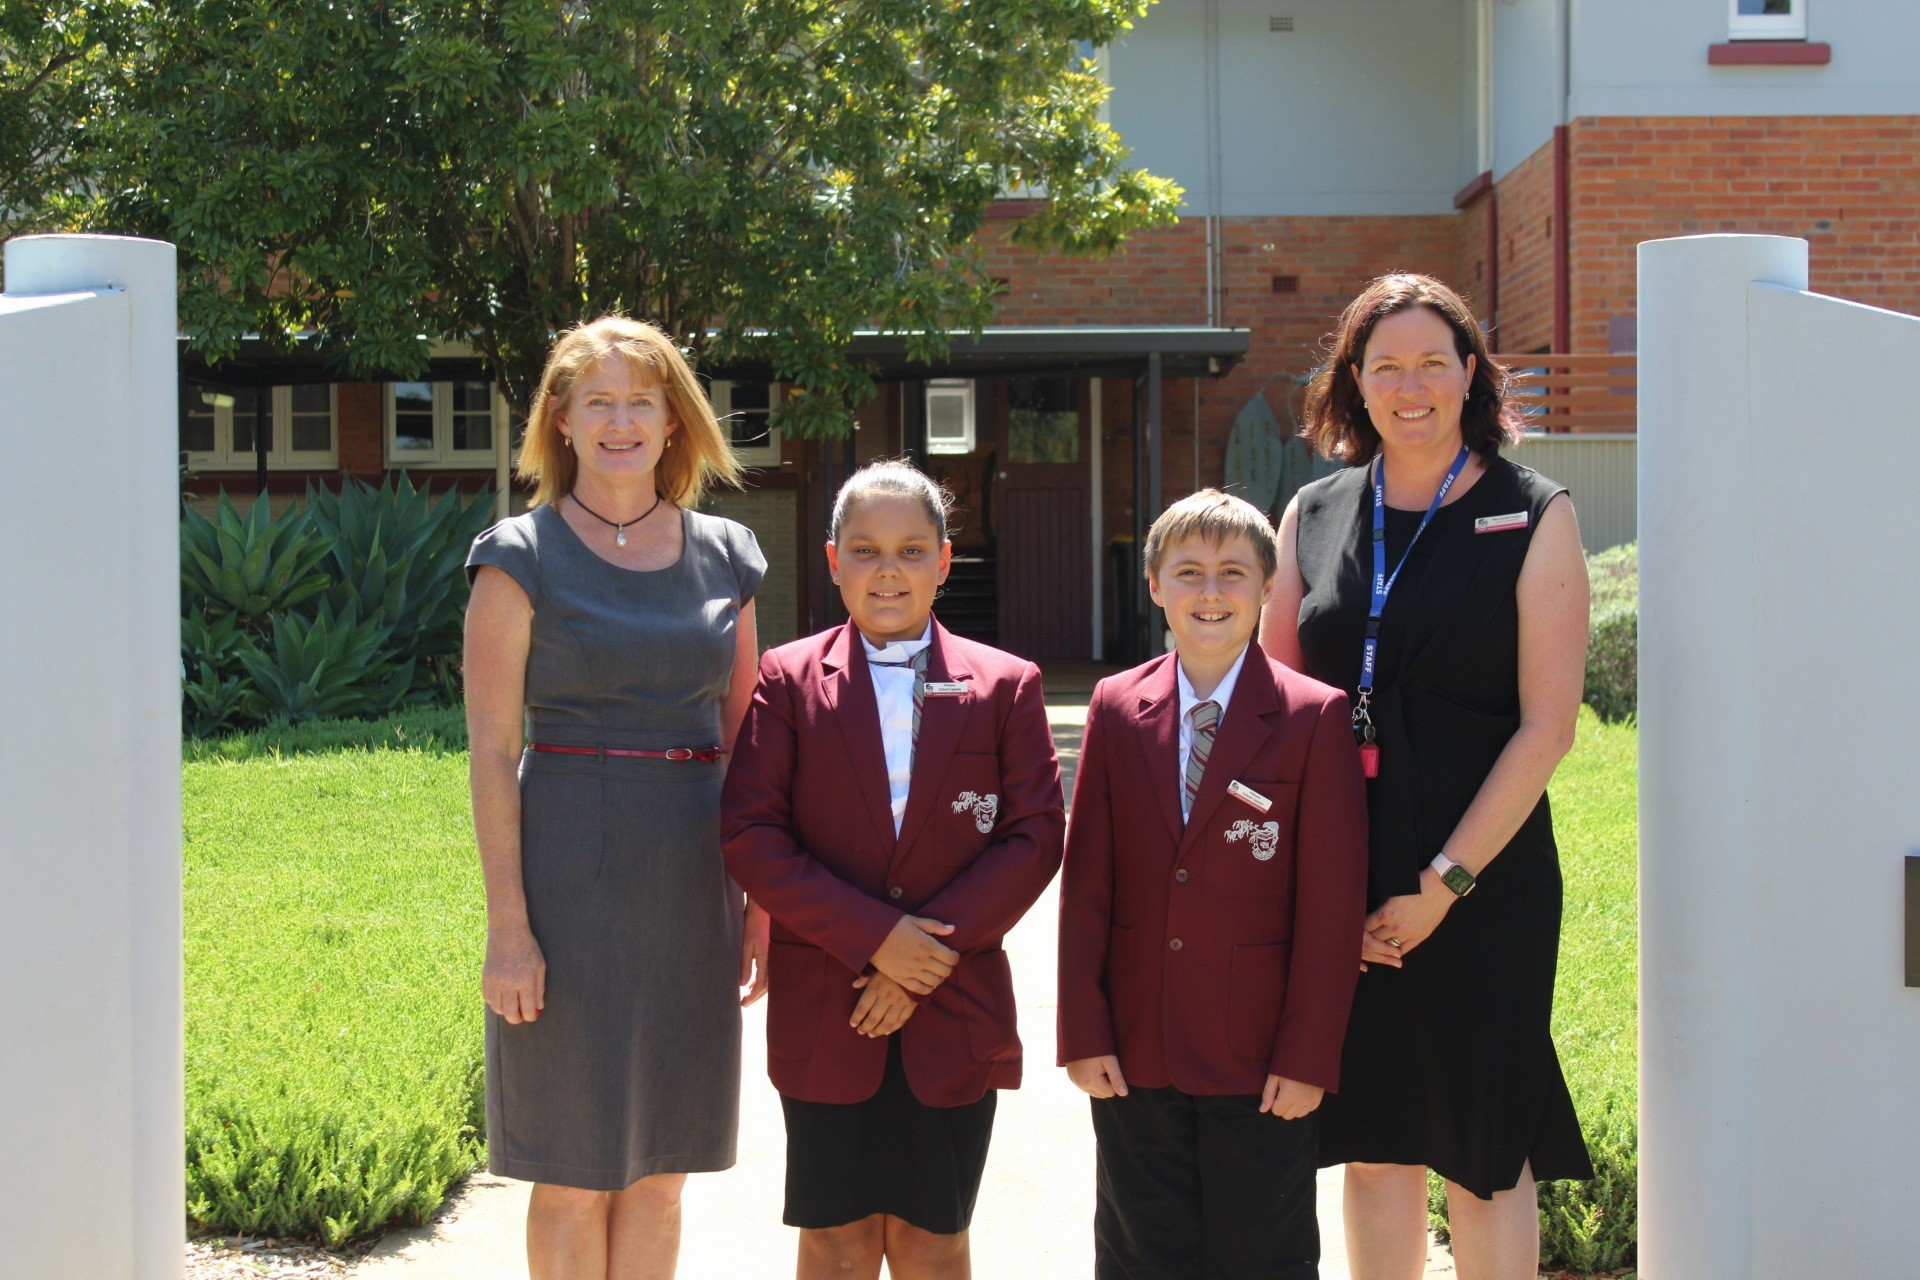 The School Leaders 2020 for Ravenshoe State School-Primary are Primary School Captain: Olivia Mason and Primary School Captain: Roman Brown, With Principal: Ms Helen Carne and Deputy Principal: Mrs Lurelle Hodge View The School